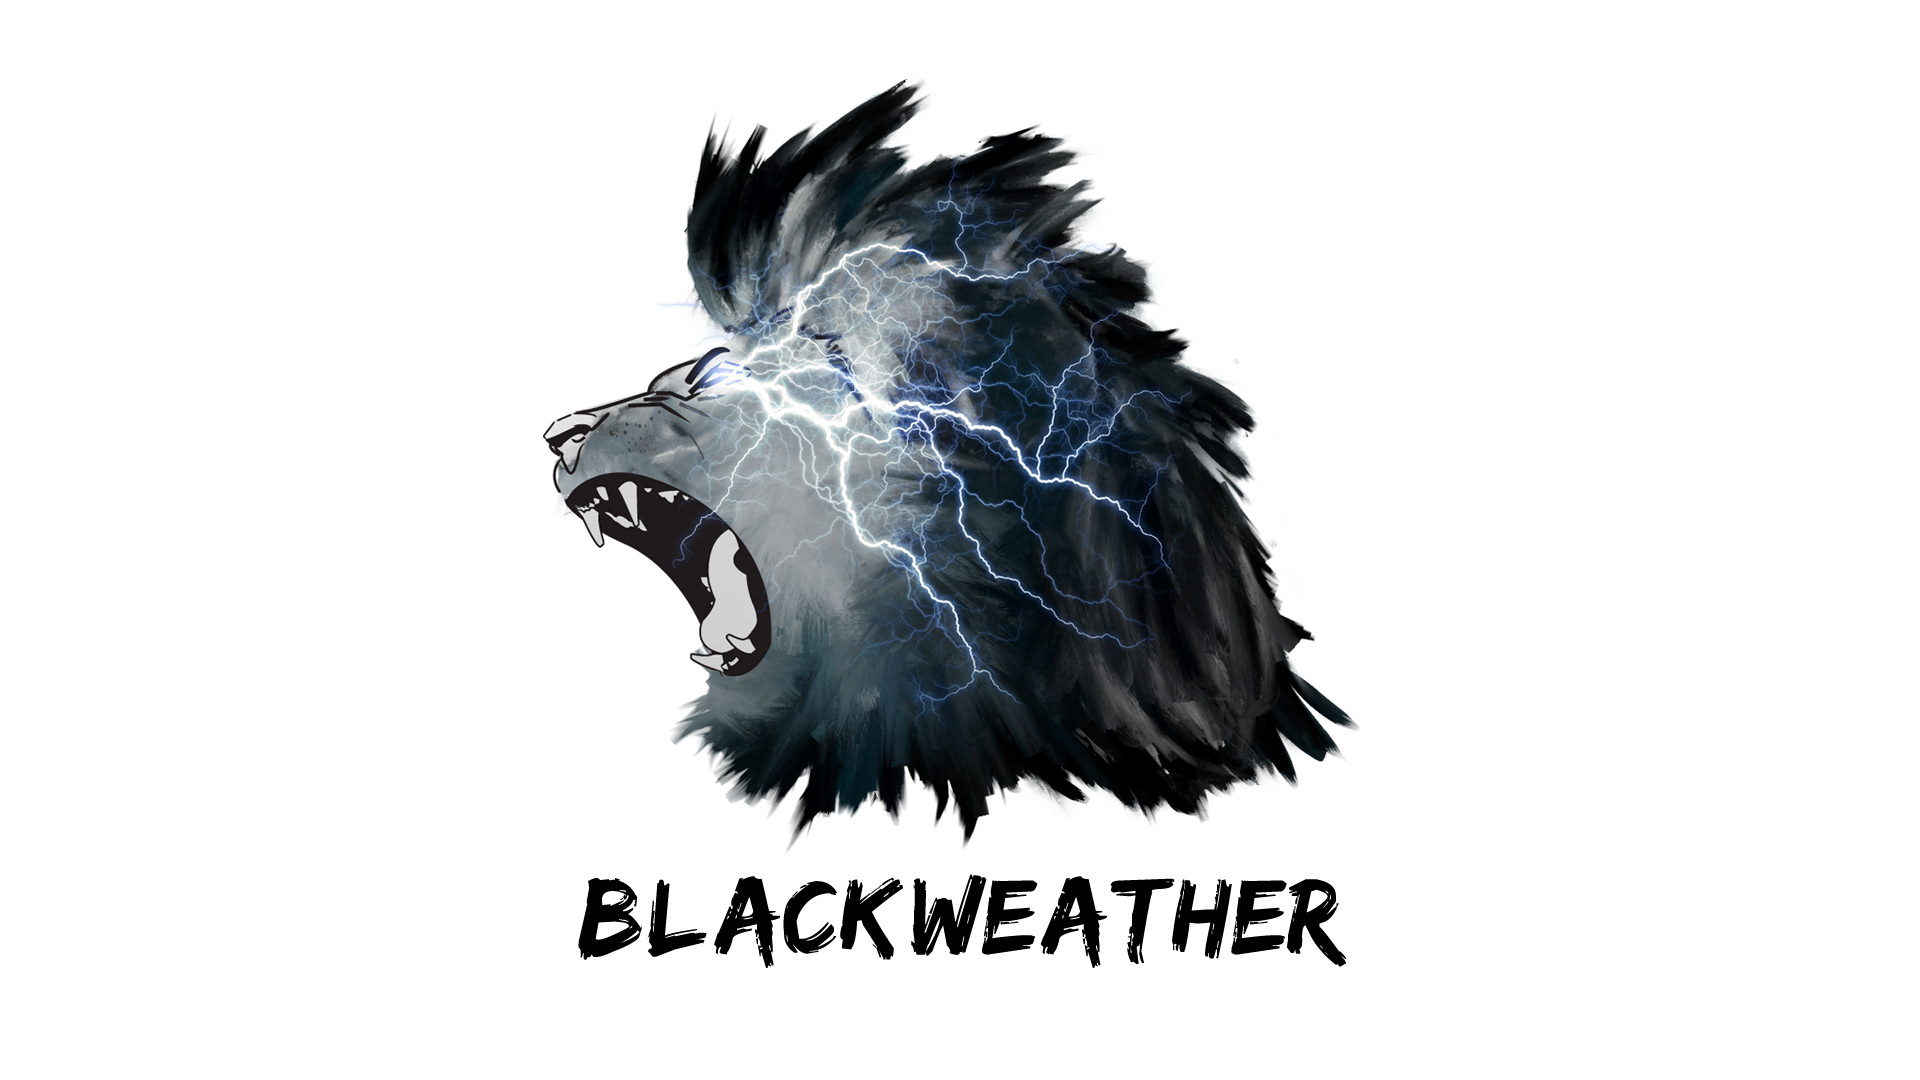 Blackweather Productions